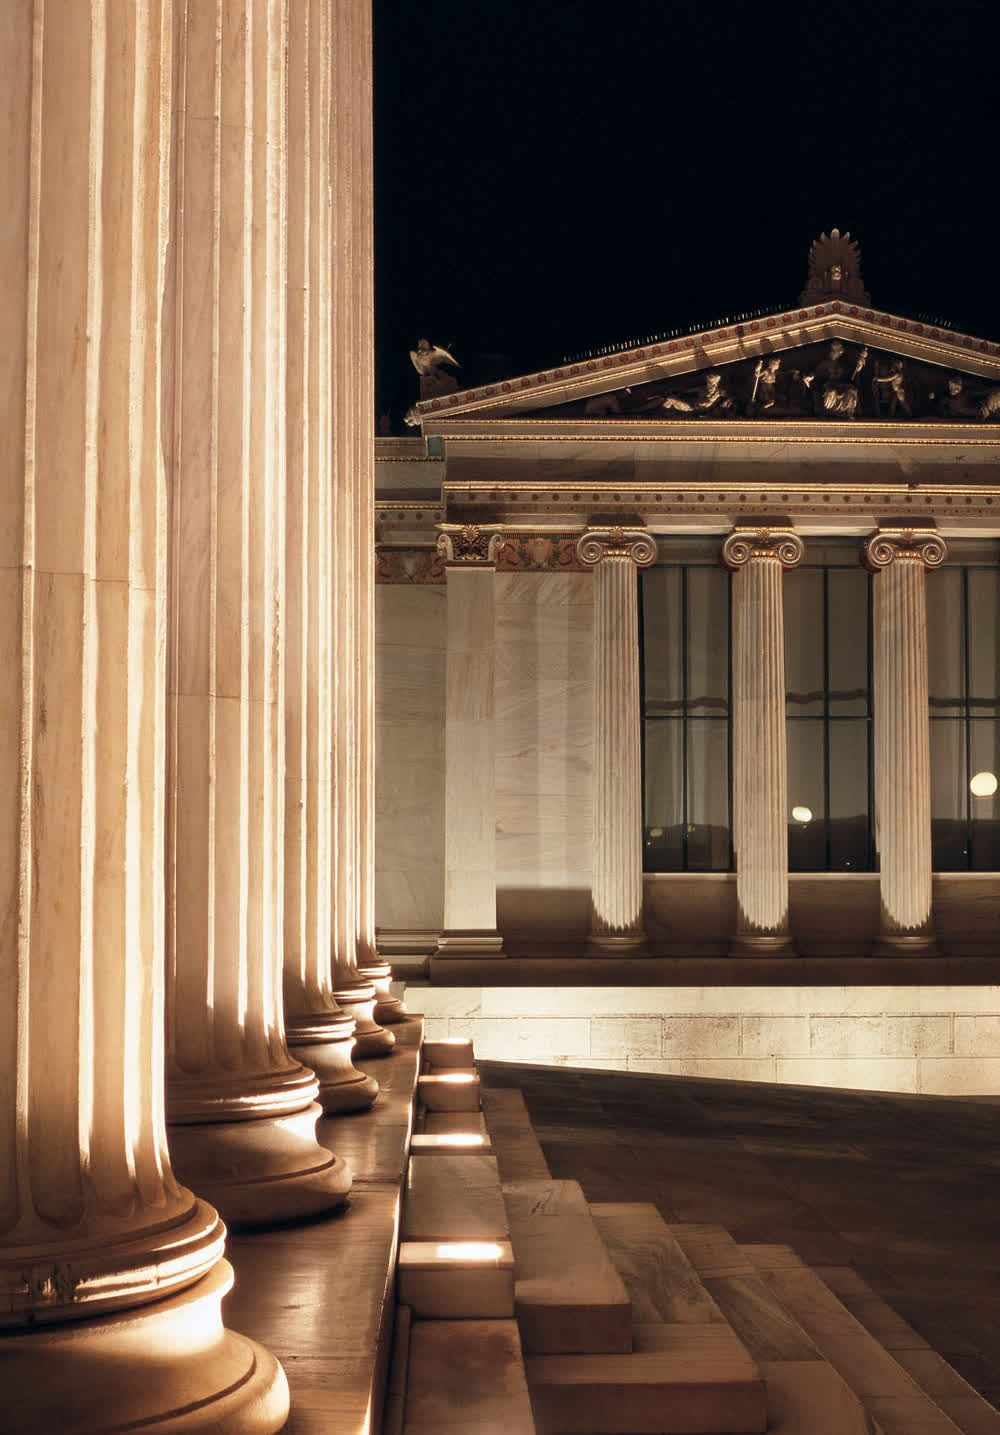 title: Exterior of the Academy of Athens Attica Greece